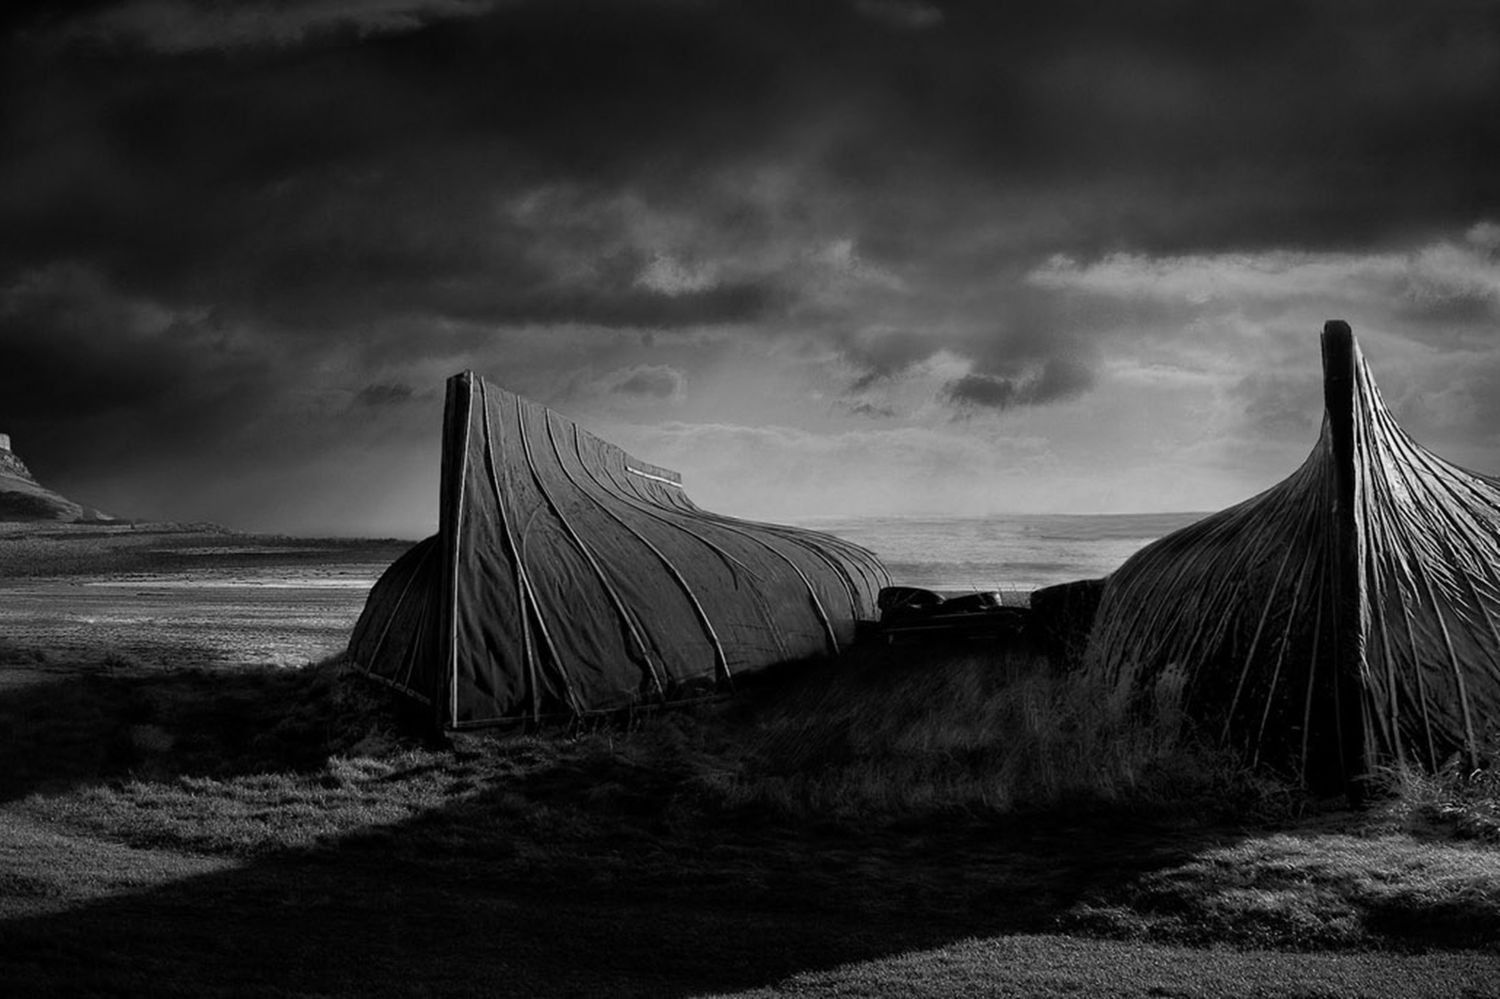 landscape photographer of the year - Google Search